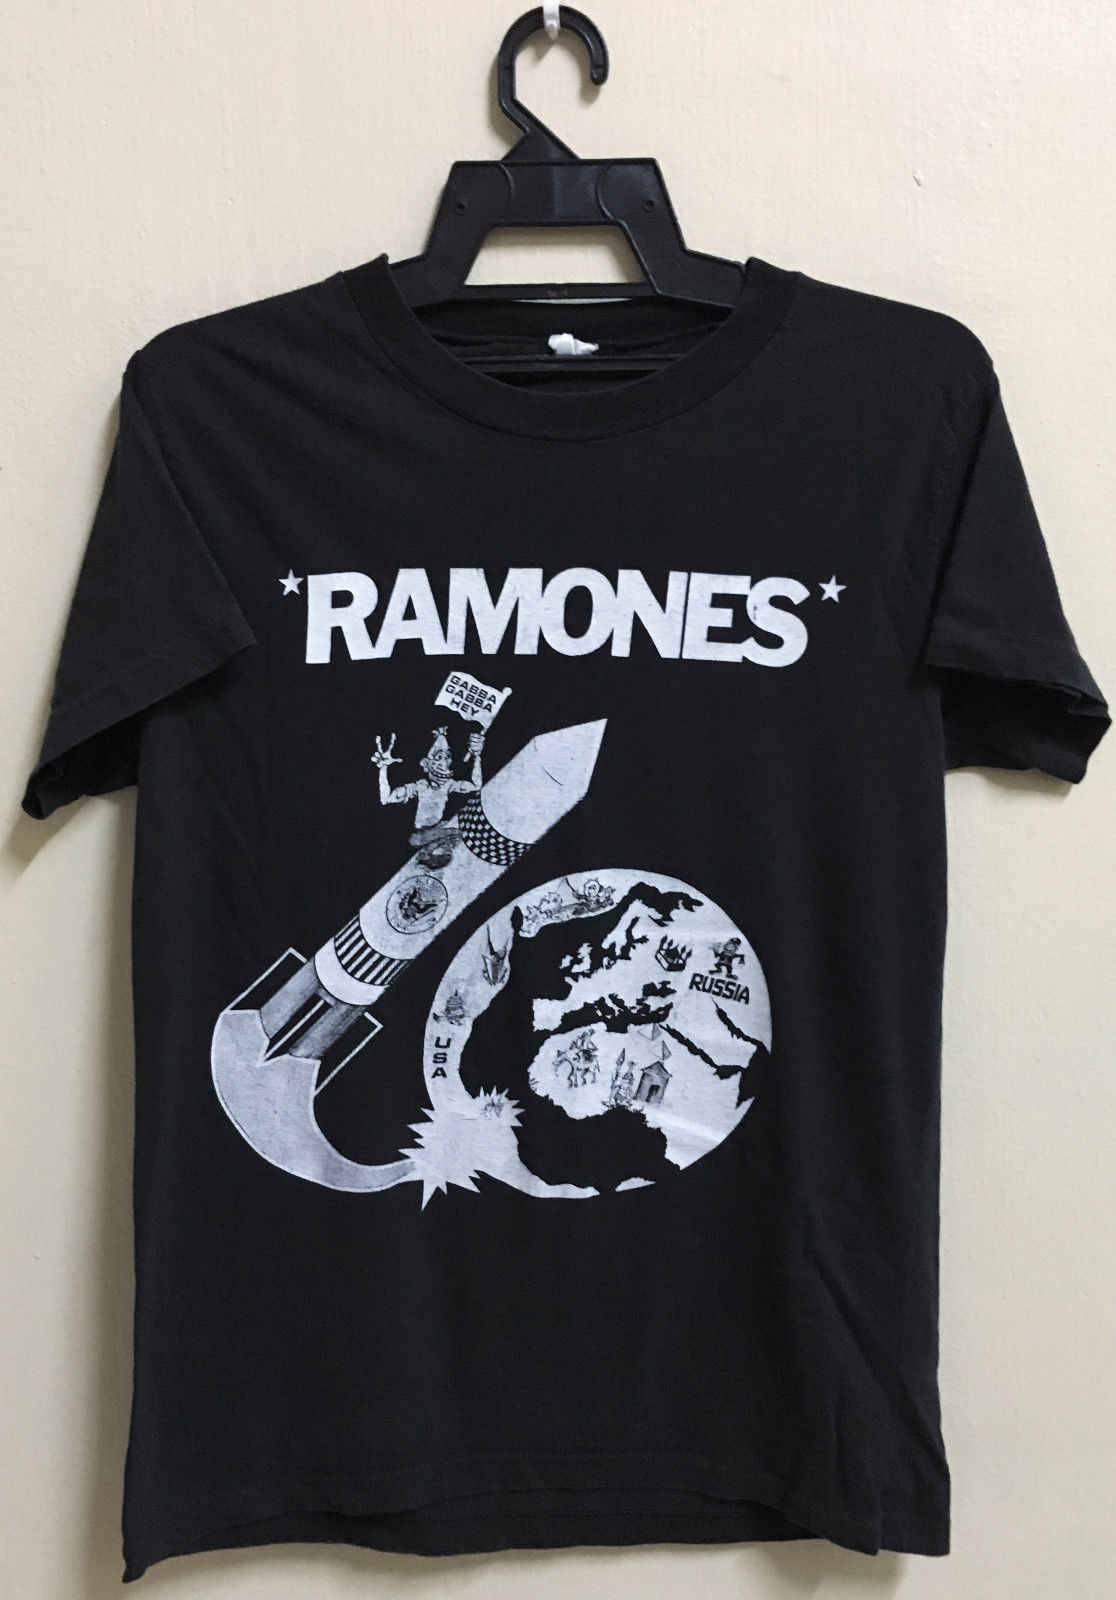 8883425a Vintage 80S Ramones Rocket To Russia Punk Rock Tour Concert Promo T Shirt  Stranger Things Design